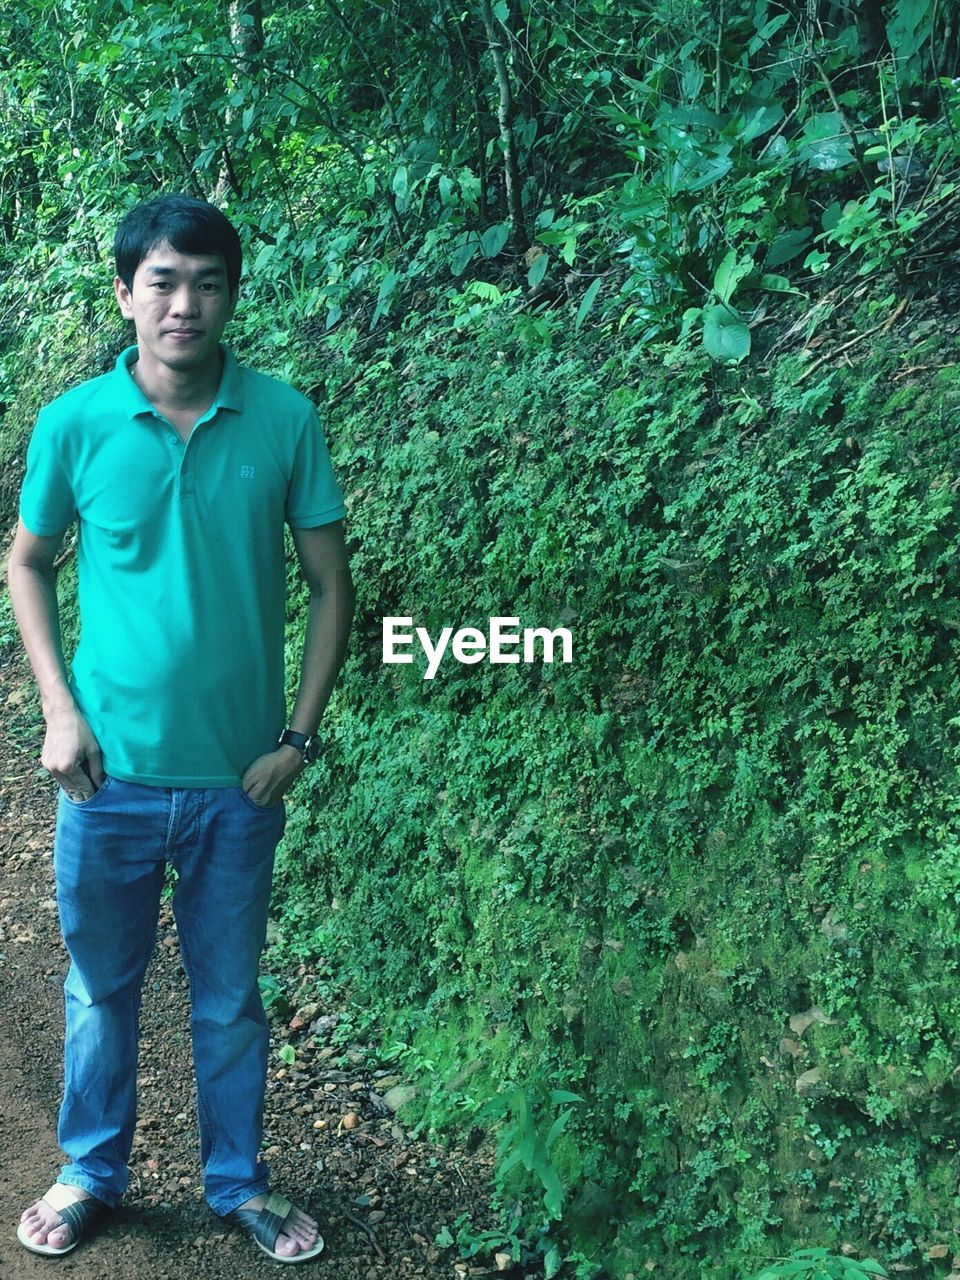 standing, casual clothing, front view, green color, one person, real people, young men, portrait, outdoors, full length, day, looking at camera, young adult, smiling, men, nature, tree, people